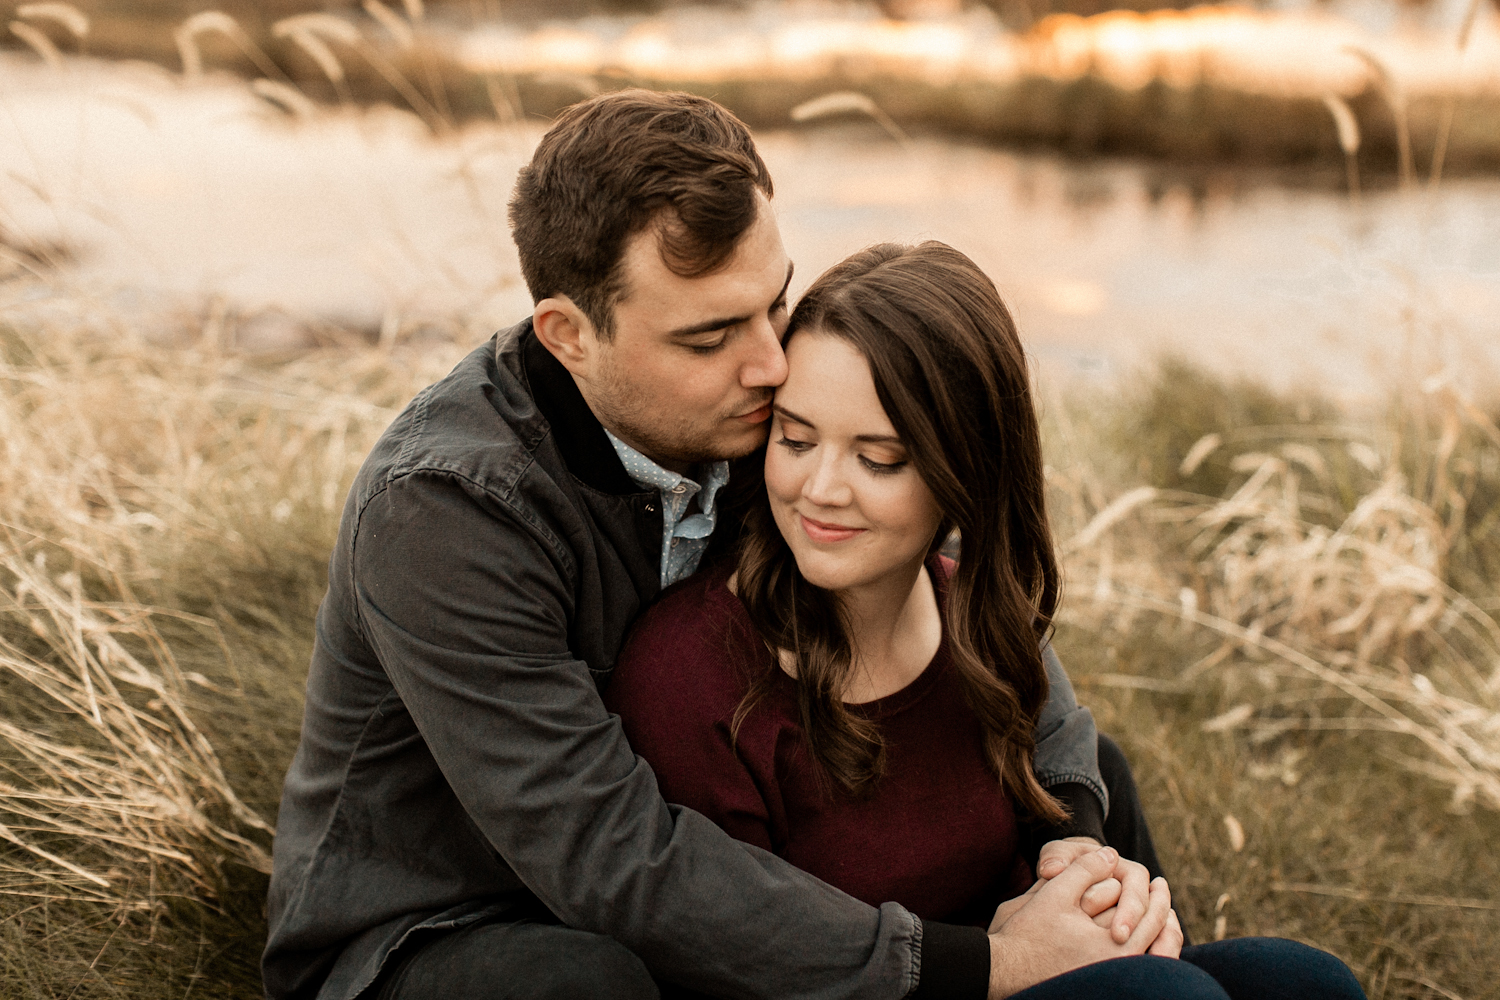 Snuggled up couple at outdoor fall engagement photoshoot